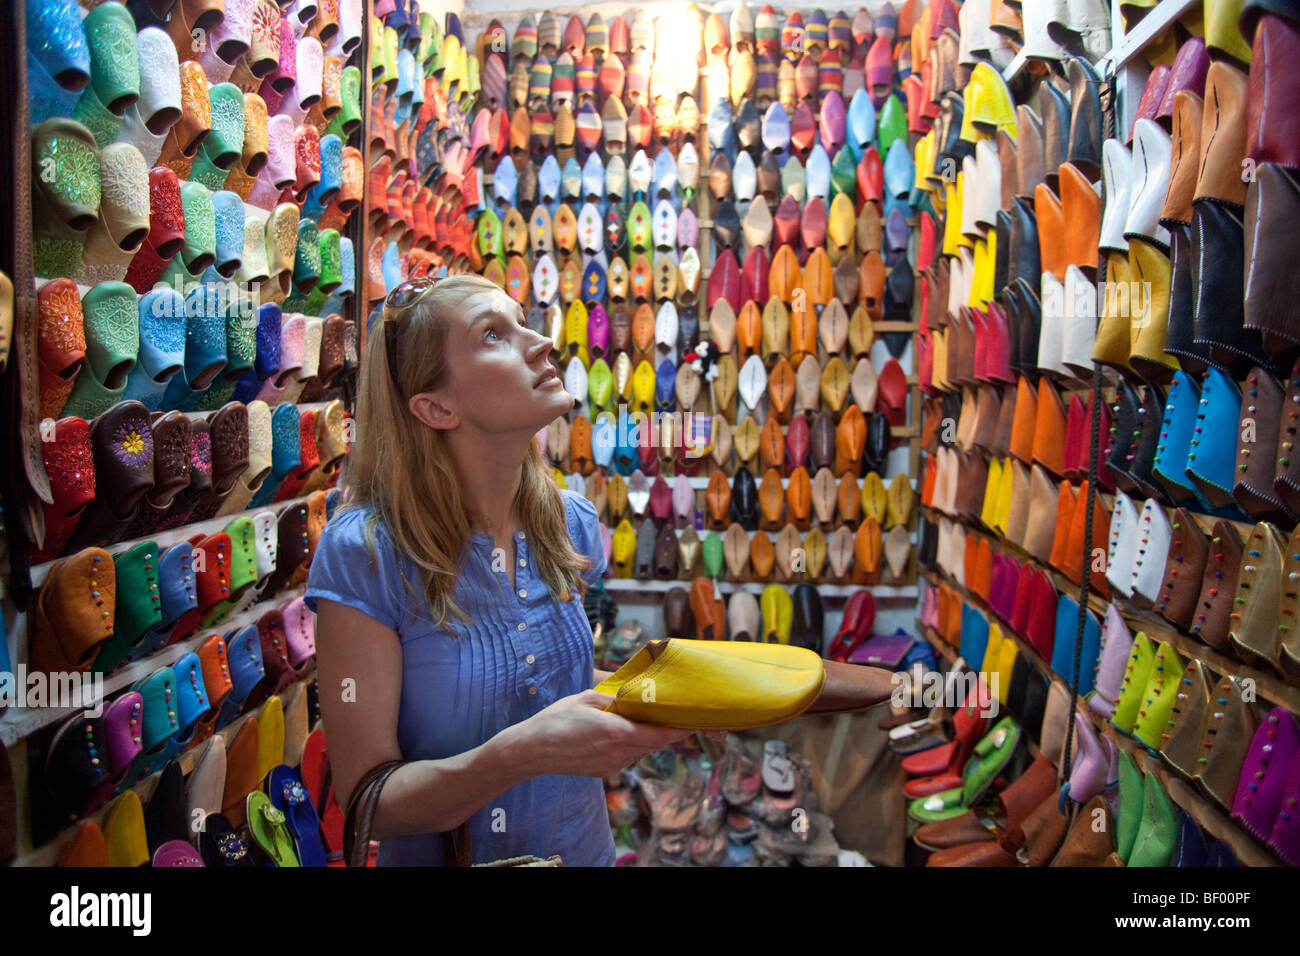 Buying Shoes In Morocco